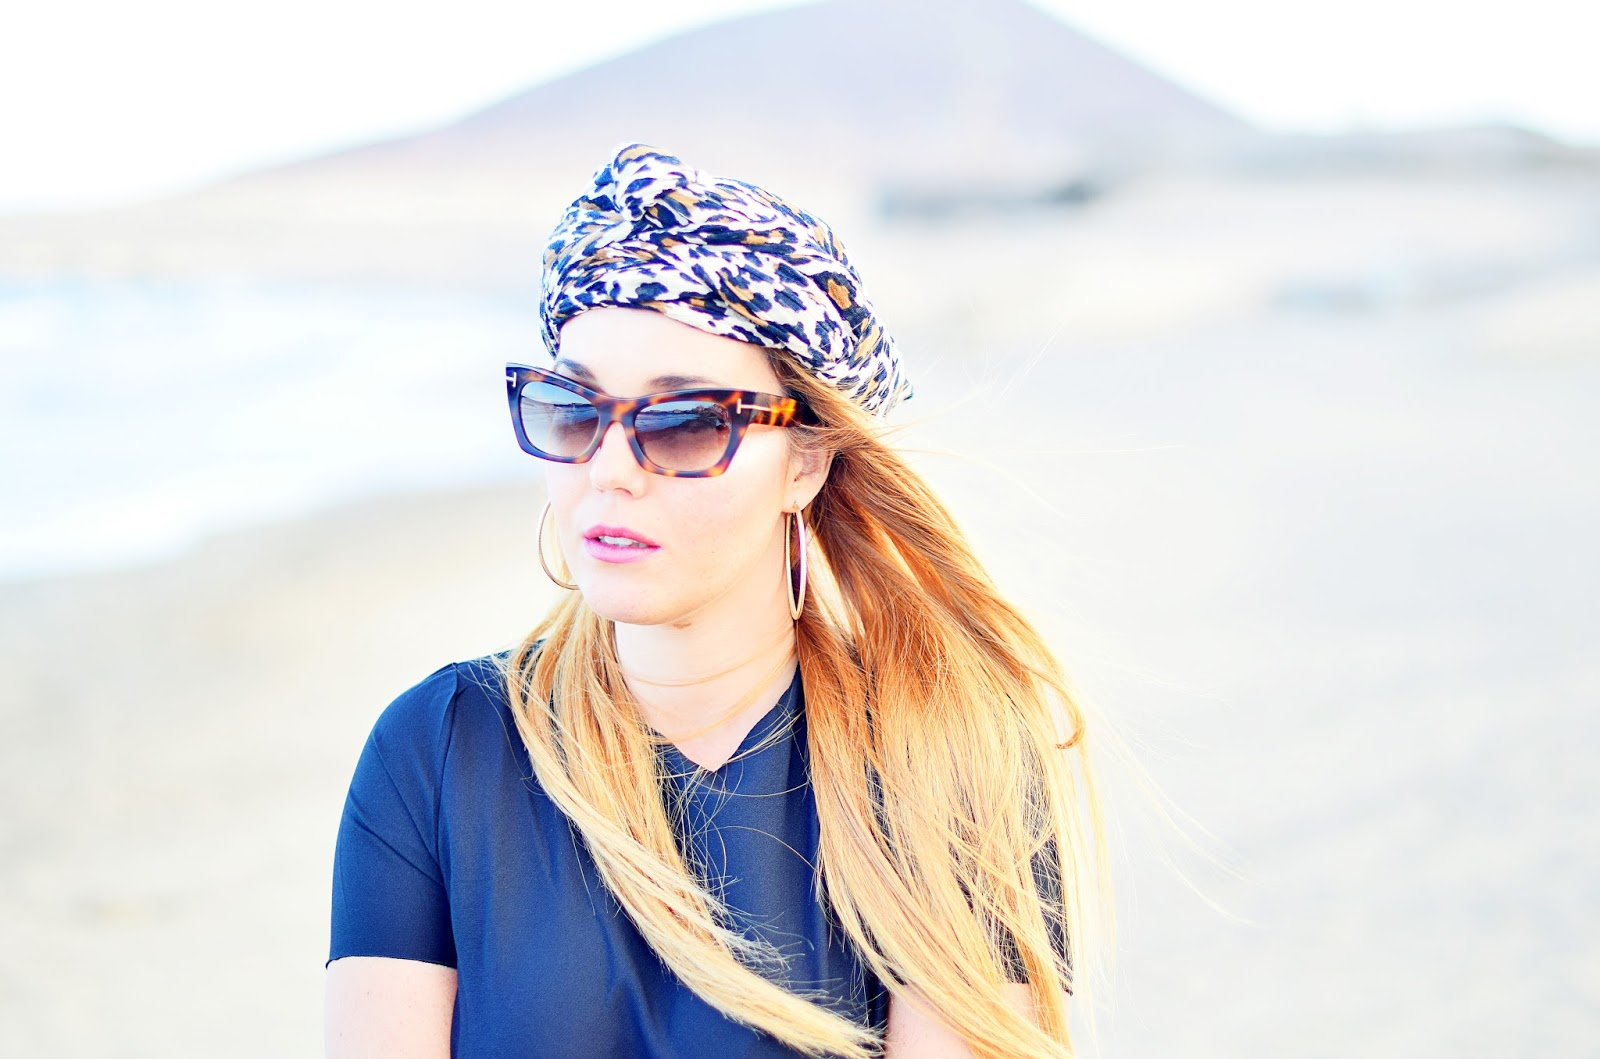 beach look, ethic look, turban, nery hdez, tom ford sunglasses, optical h, nery hde